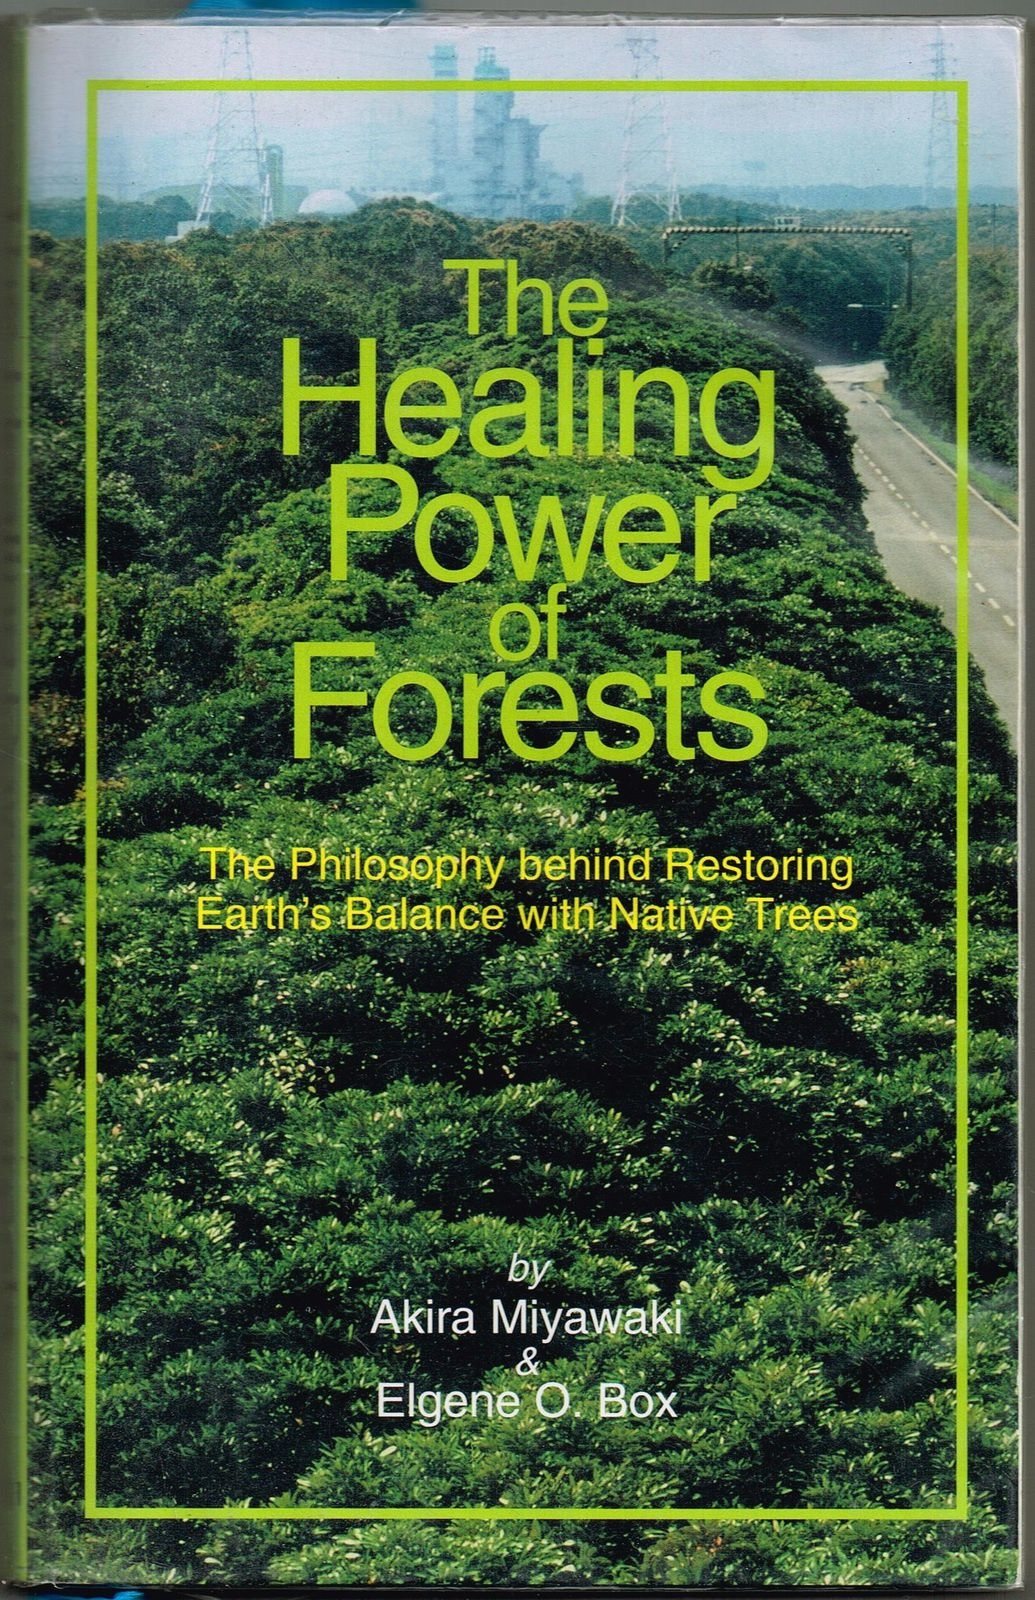 Societal values x Business values (Akira Miyawaki: The Healing Power of Forests)